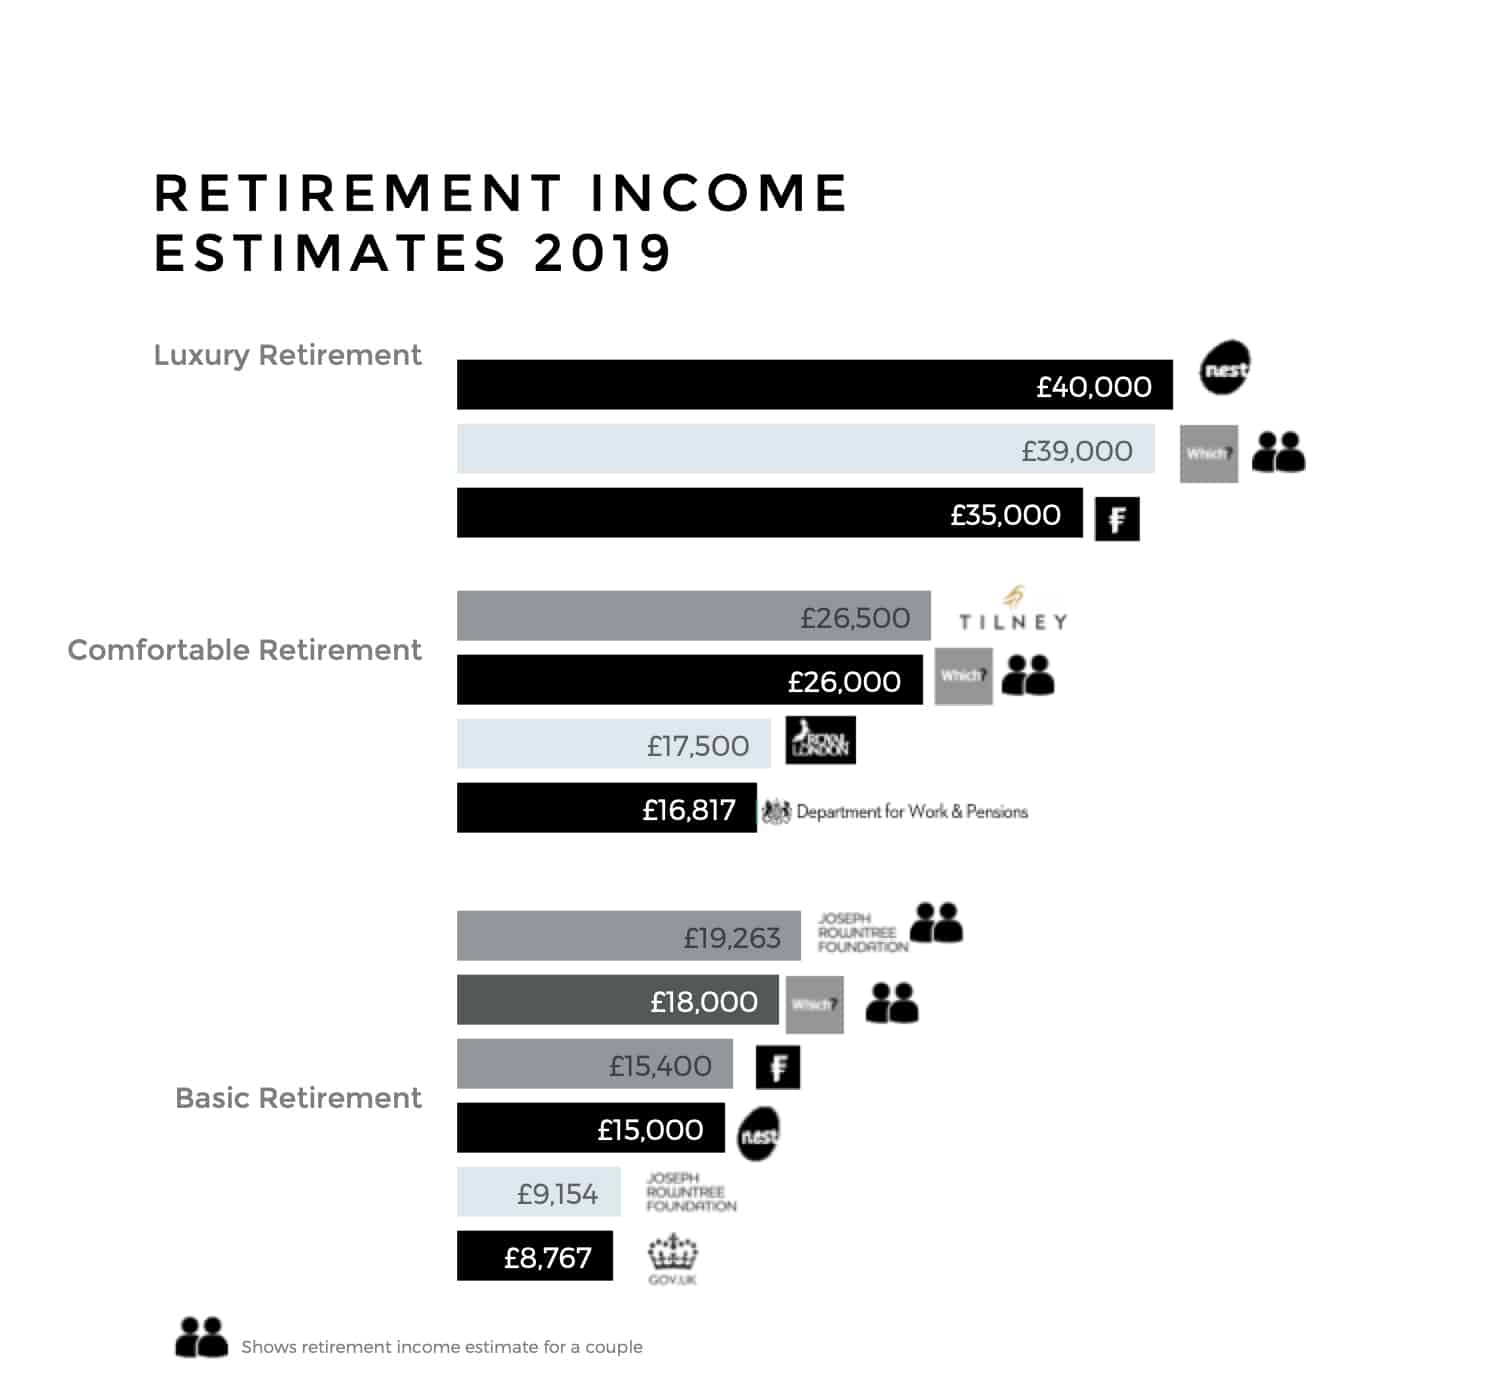 Retirement-income-estimates-2019